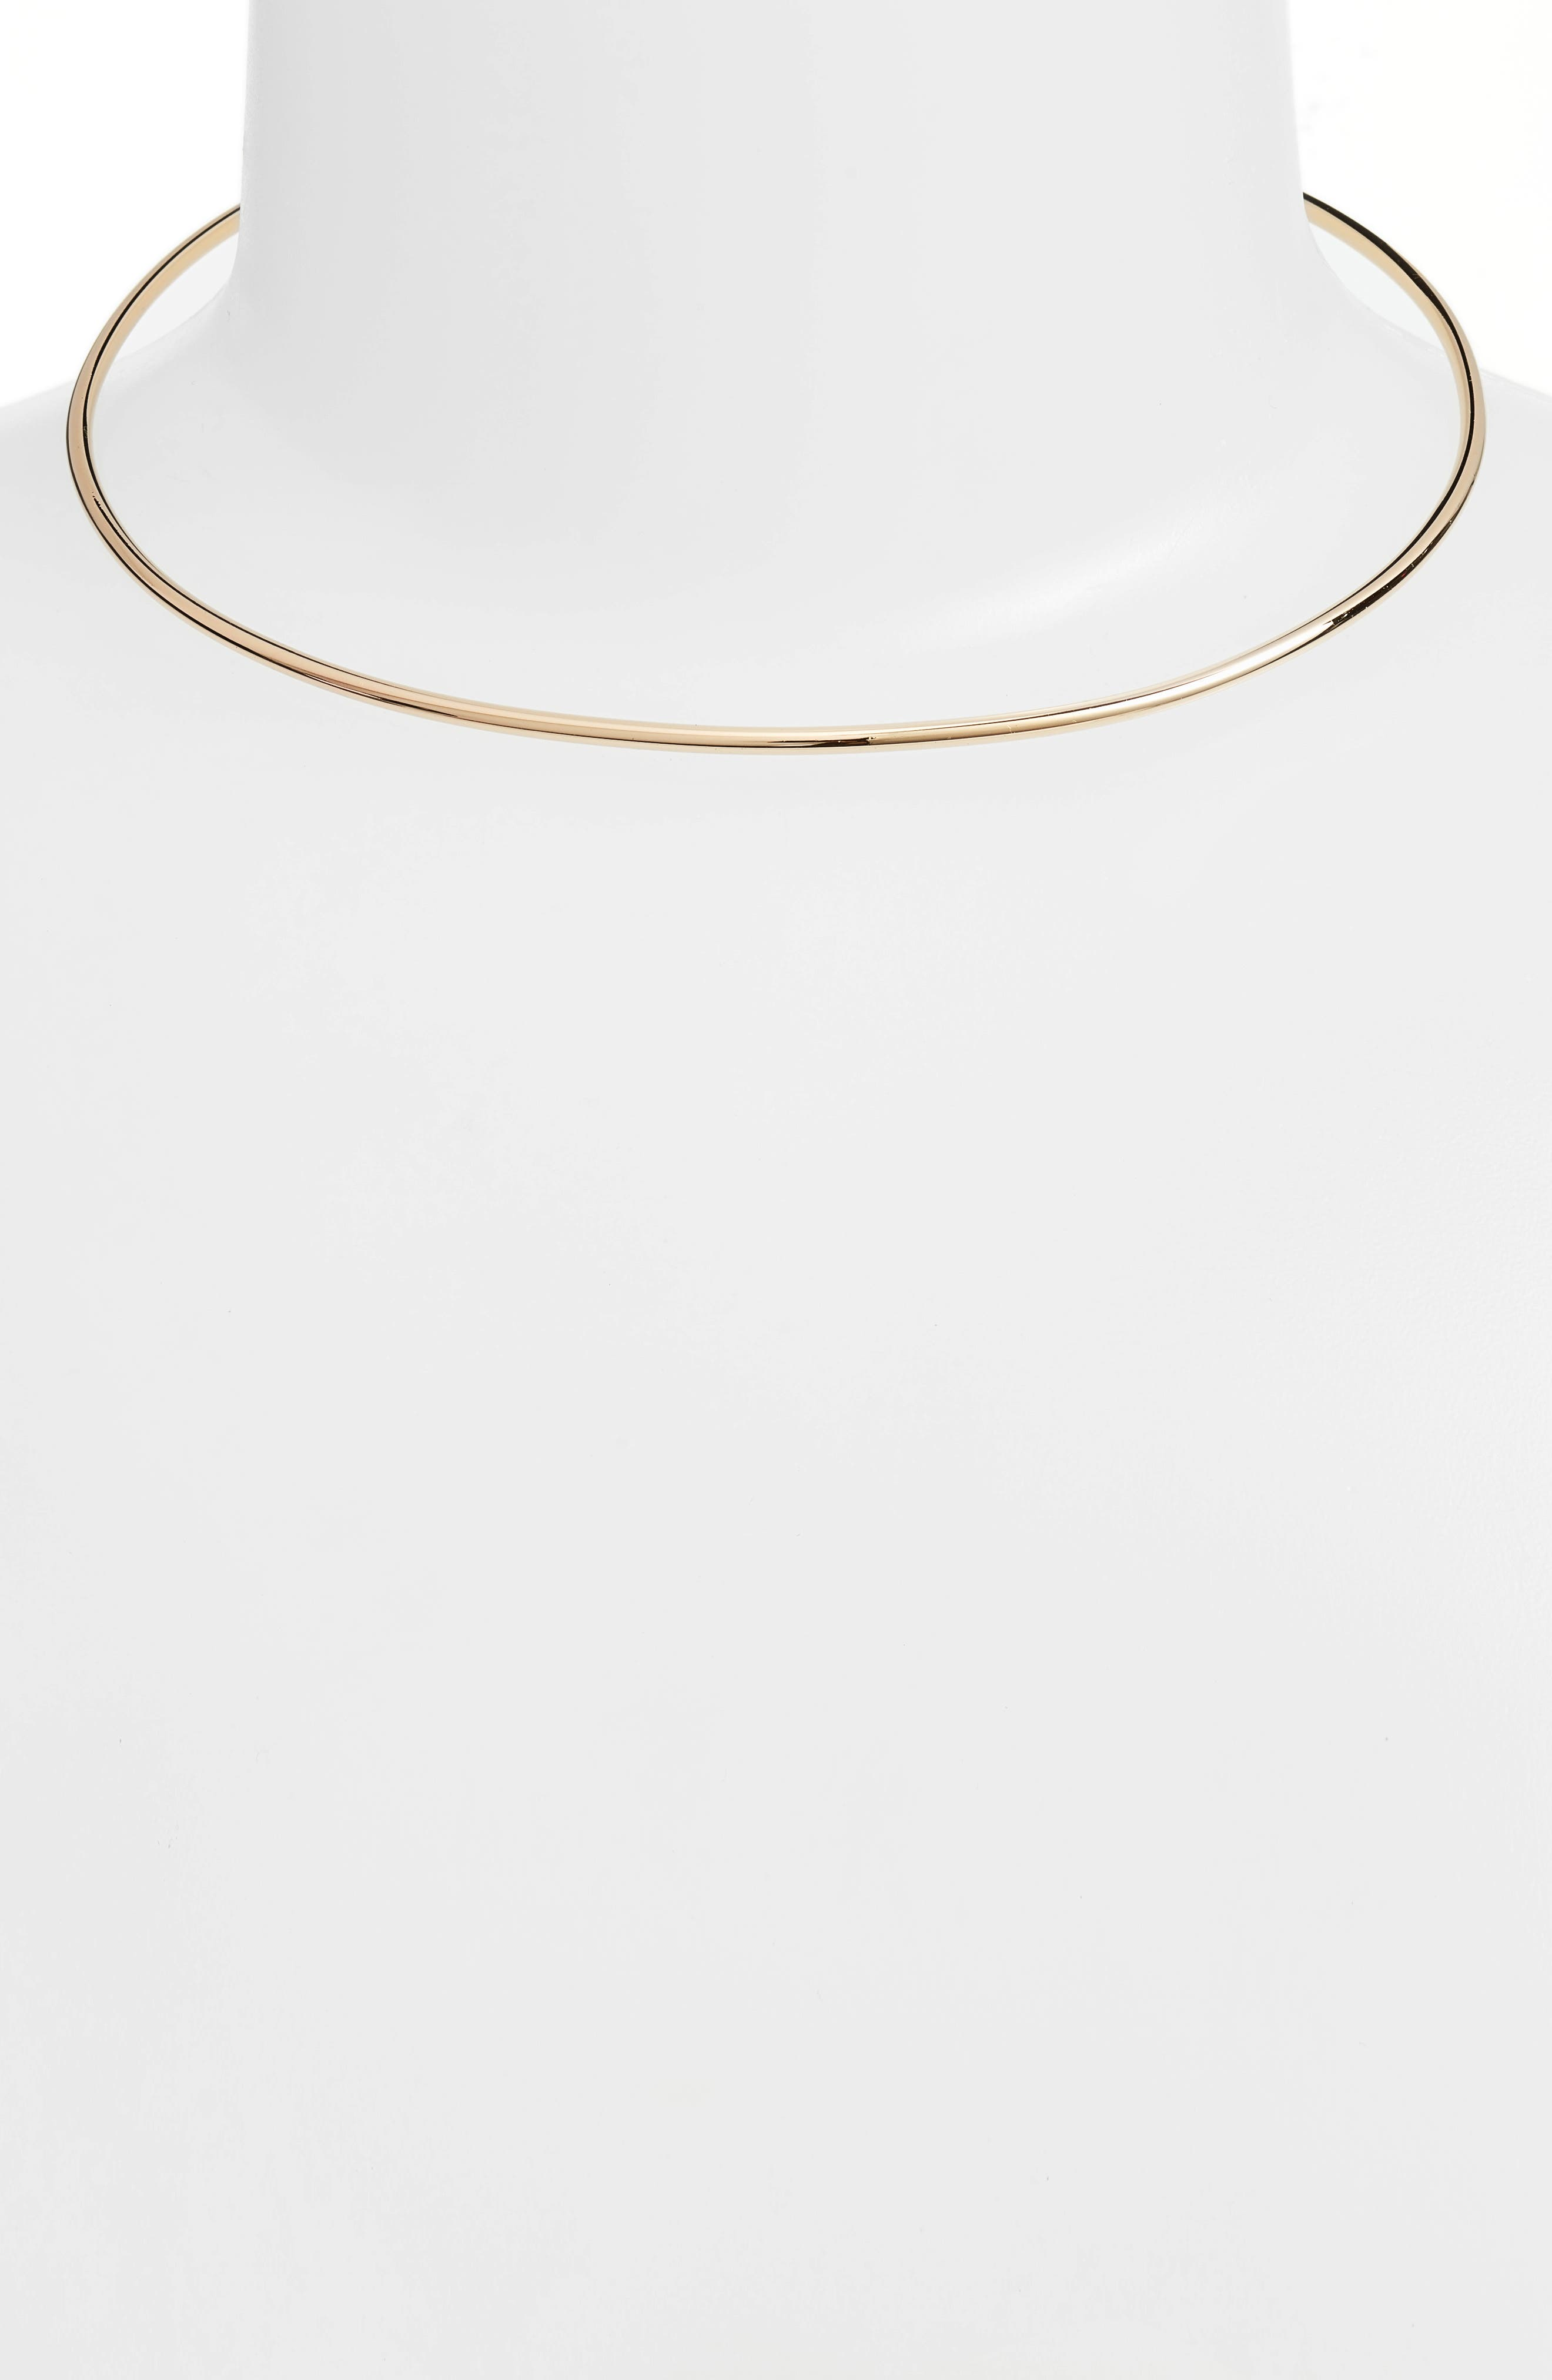 Vada Collar Necklace,                         Main,                         color, Gold